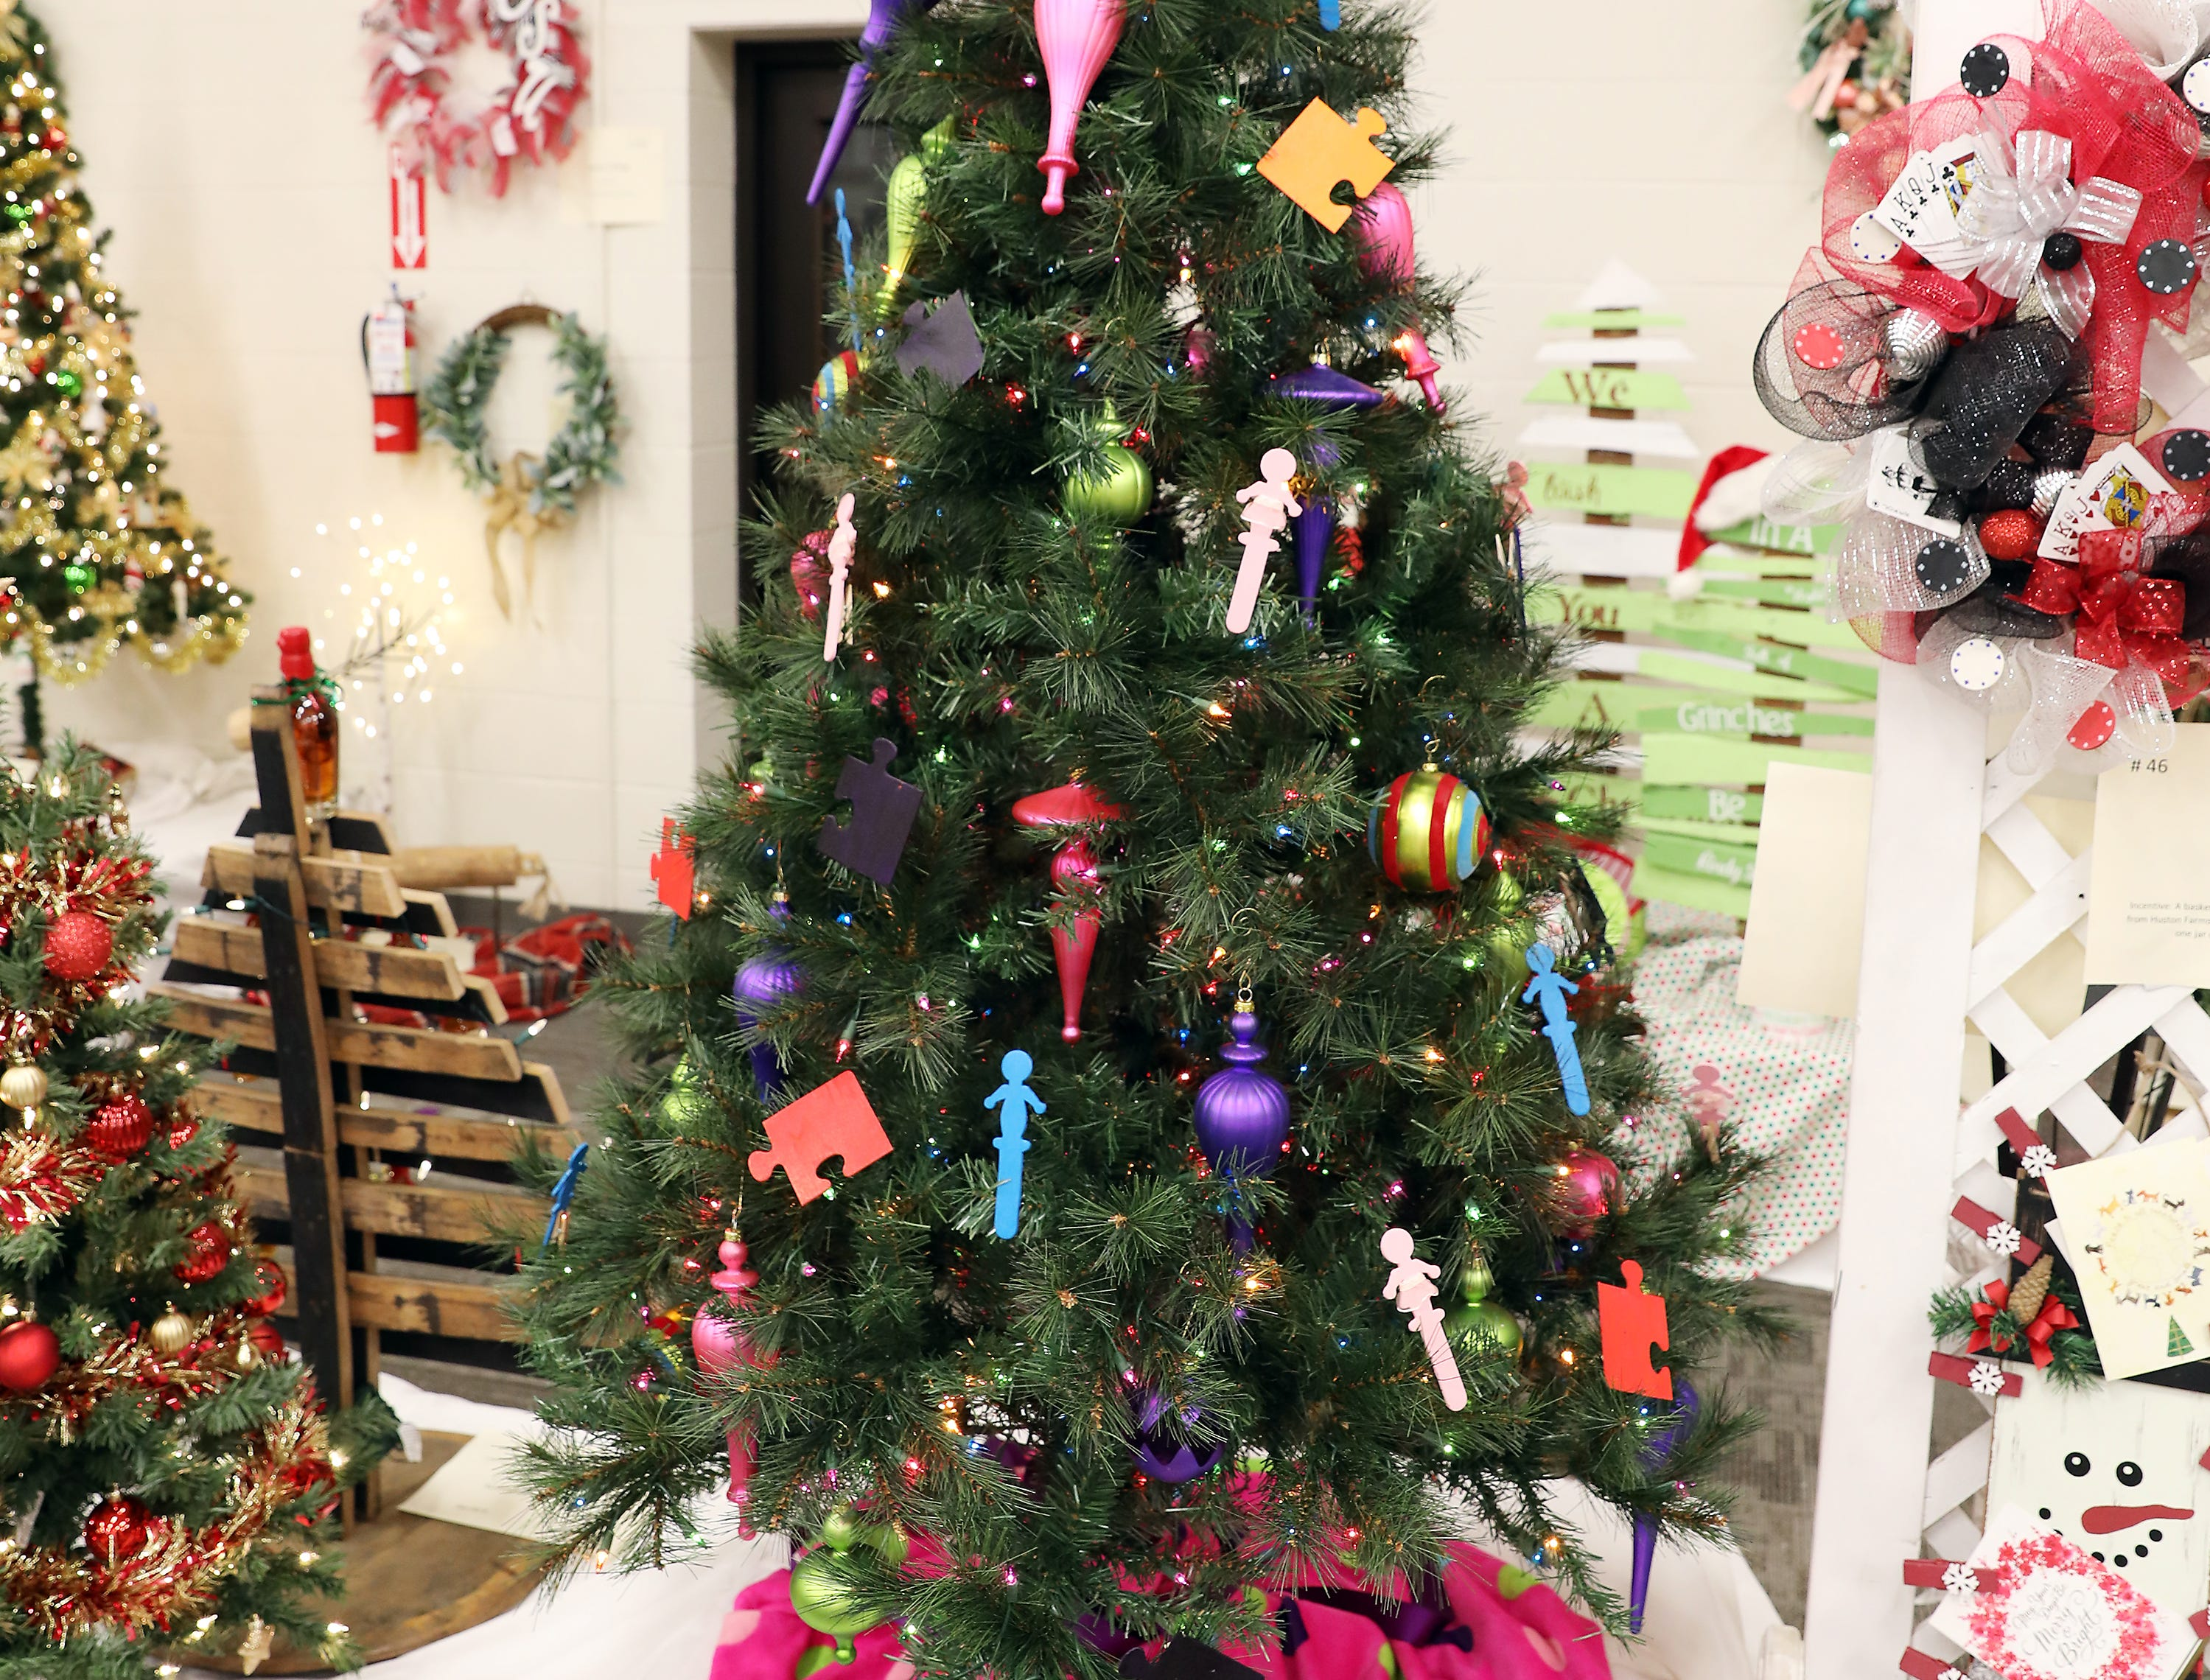 200	5:00 PM	Coconis Furniture	Large Tree	A Merry Christmas for Children with Autism	Large tree with striped hat as a topper, large glass ornaments in bright colors, hand painted puzzle pieces and children ornaments.		$250 gift card to Coconis Furniture